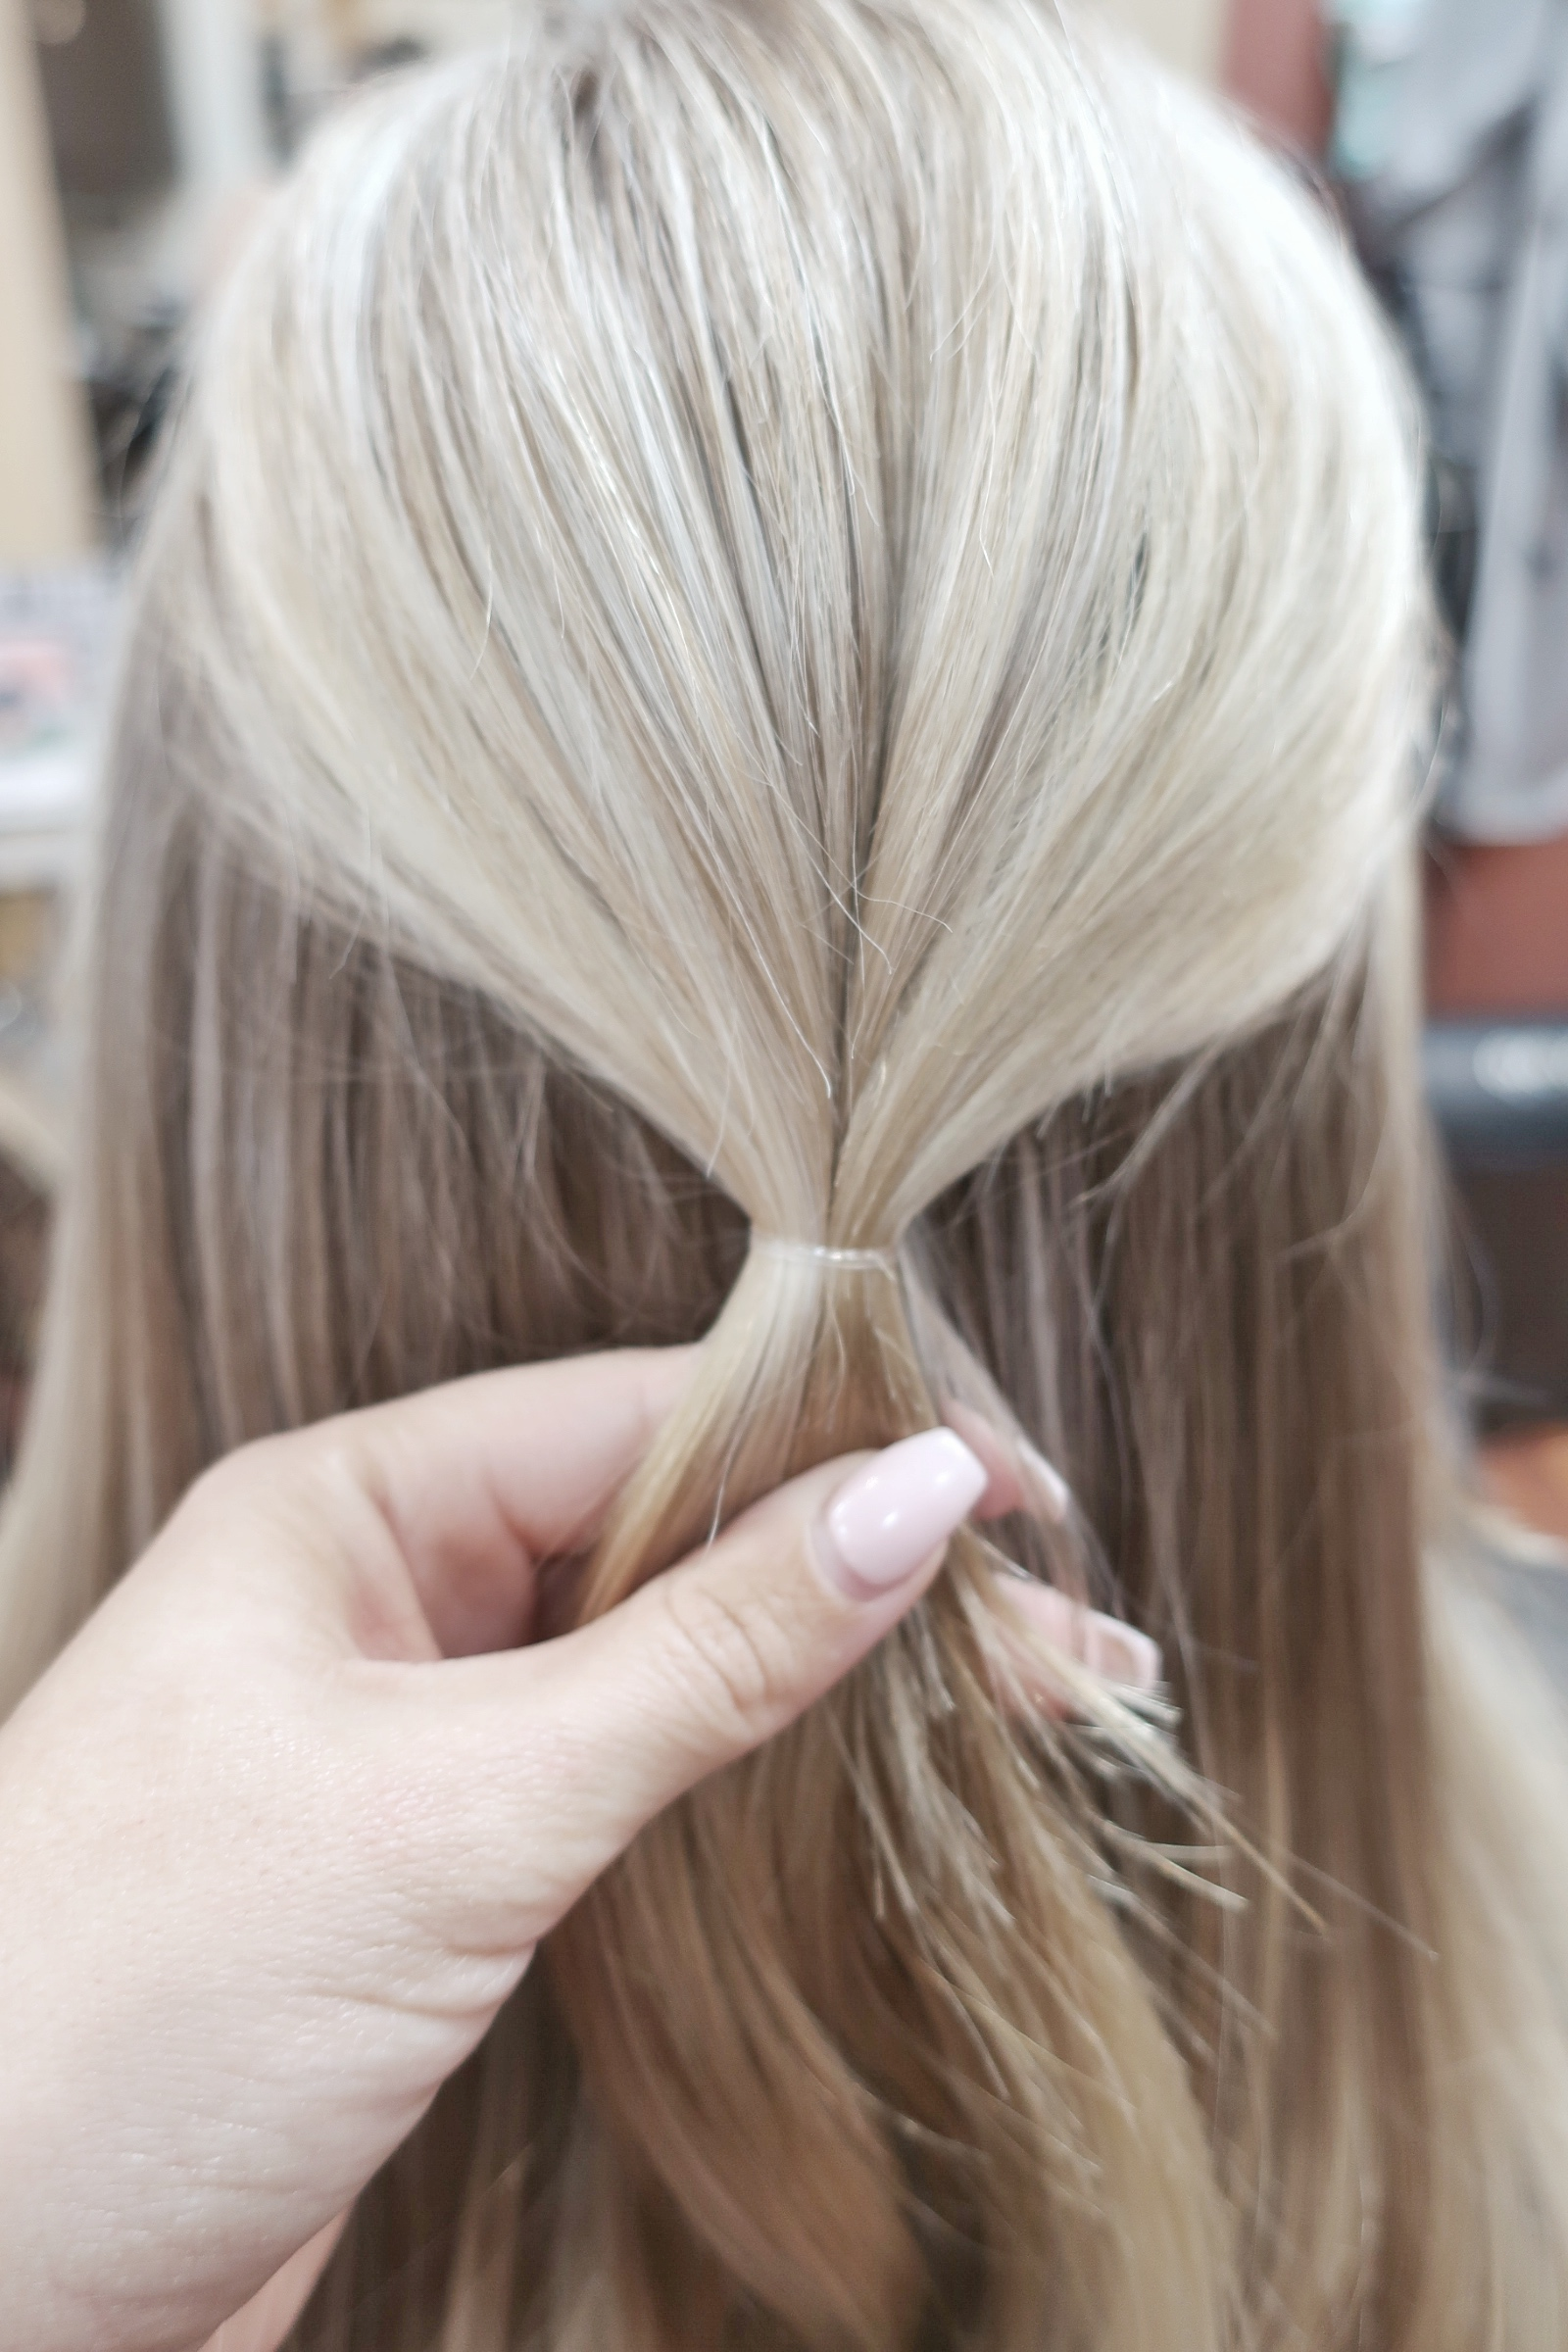 Gather HALF hair and put into a half up securing with a no snag elastic. Make sure before securing hair tie that hair is smooth and any fringe around your face you would like left out is.